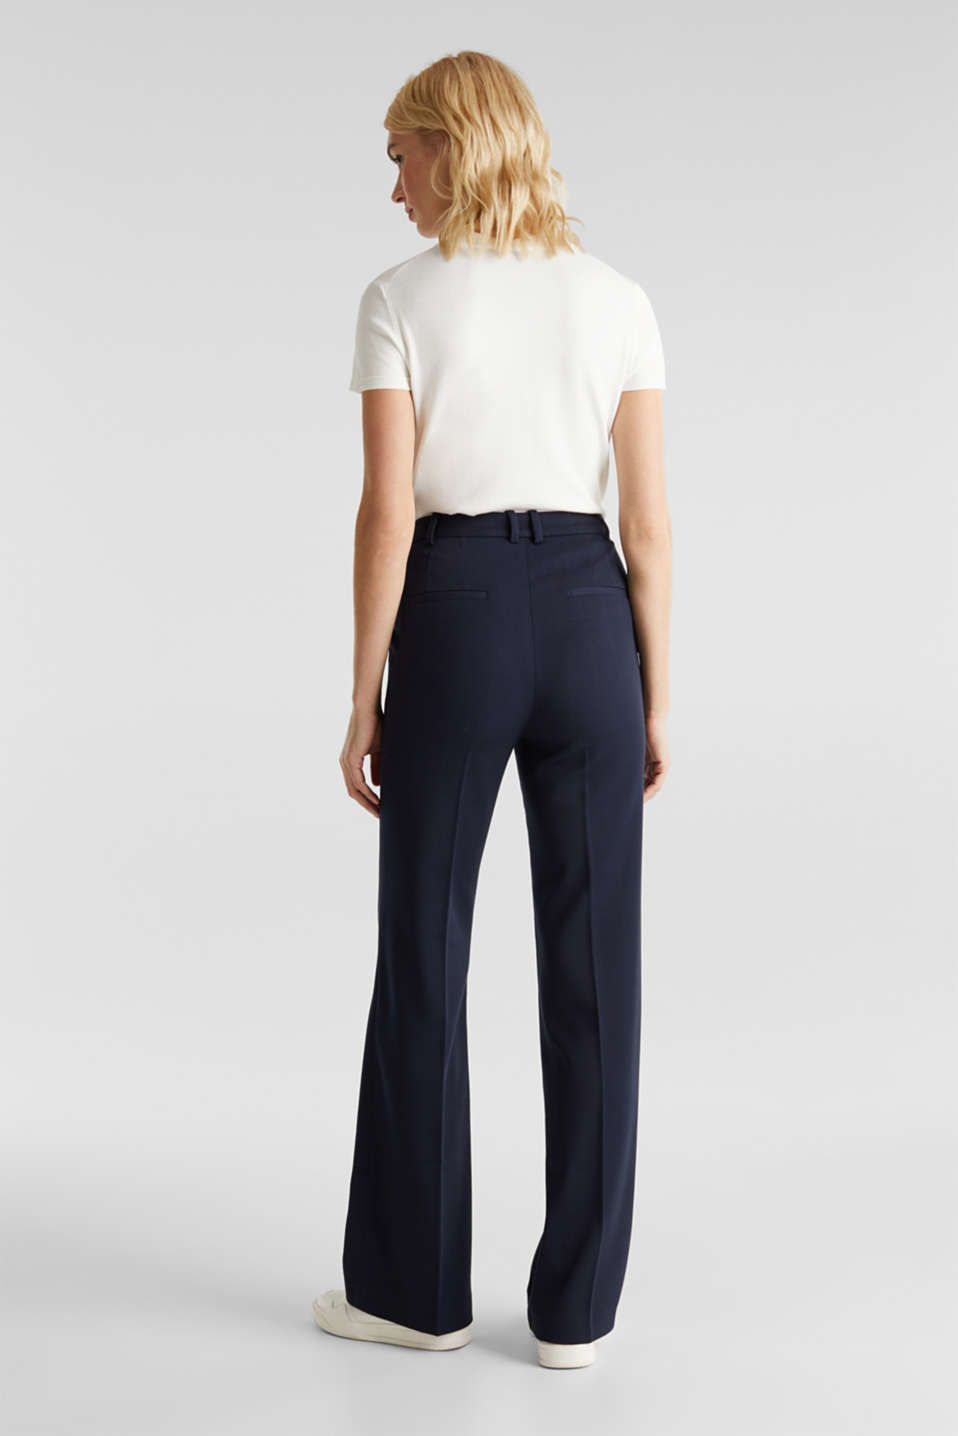 HERRINGBONE Mix + Match stretch trousers, NAVY, detail image number 3